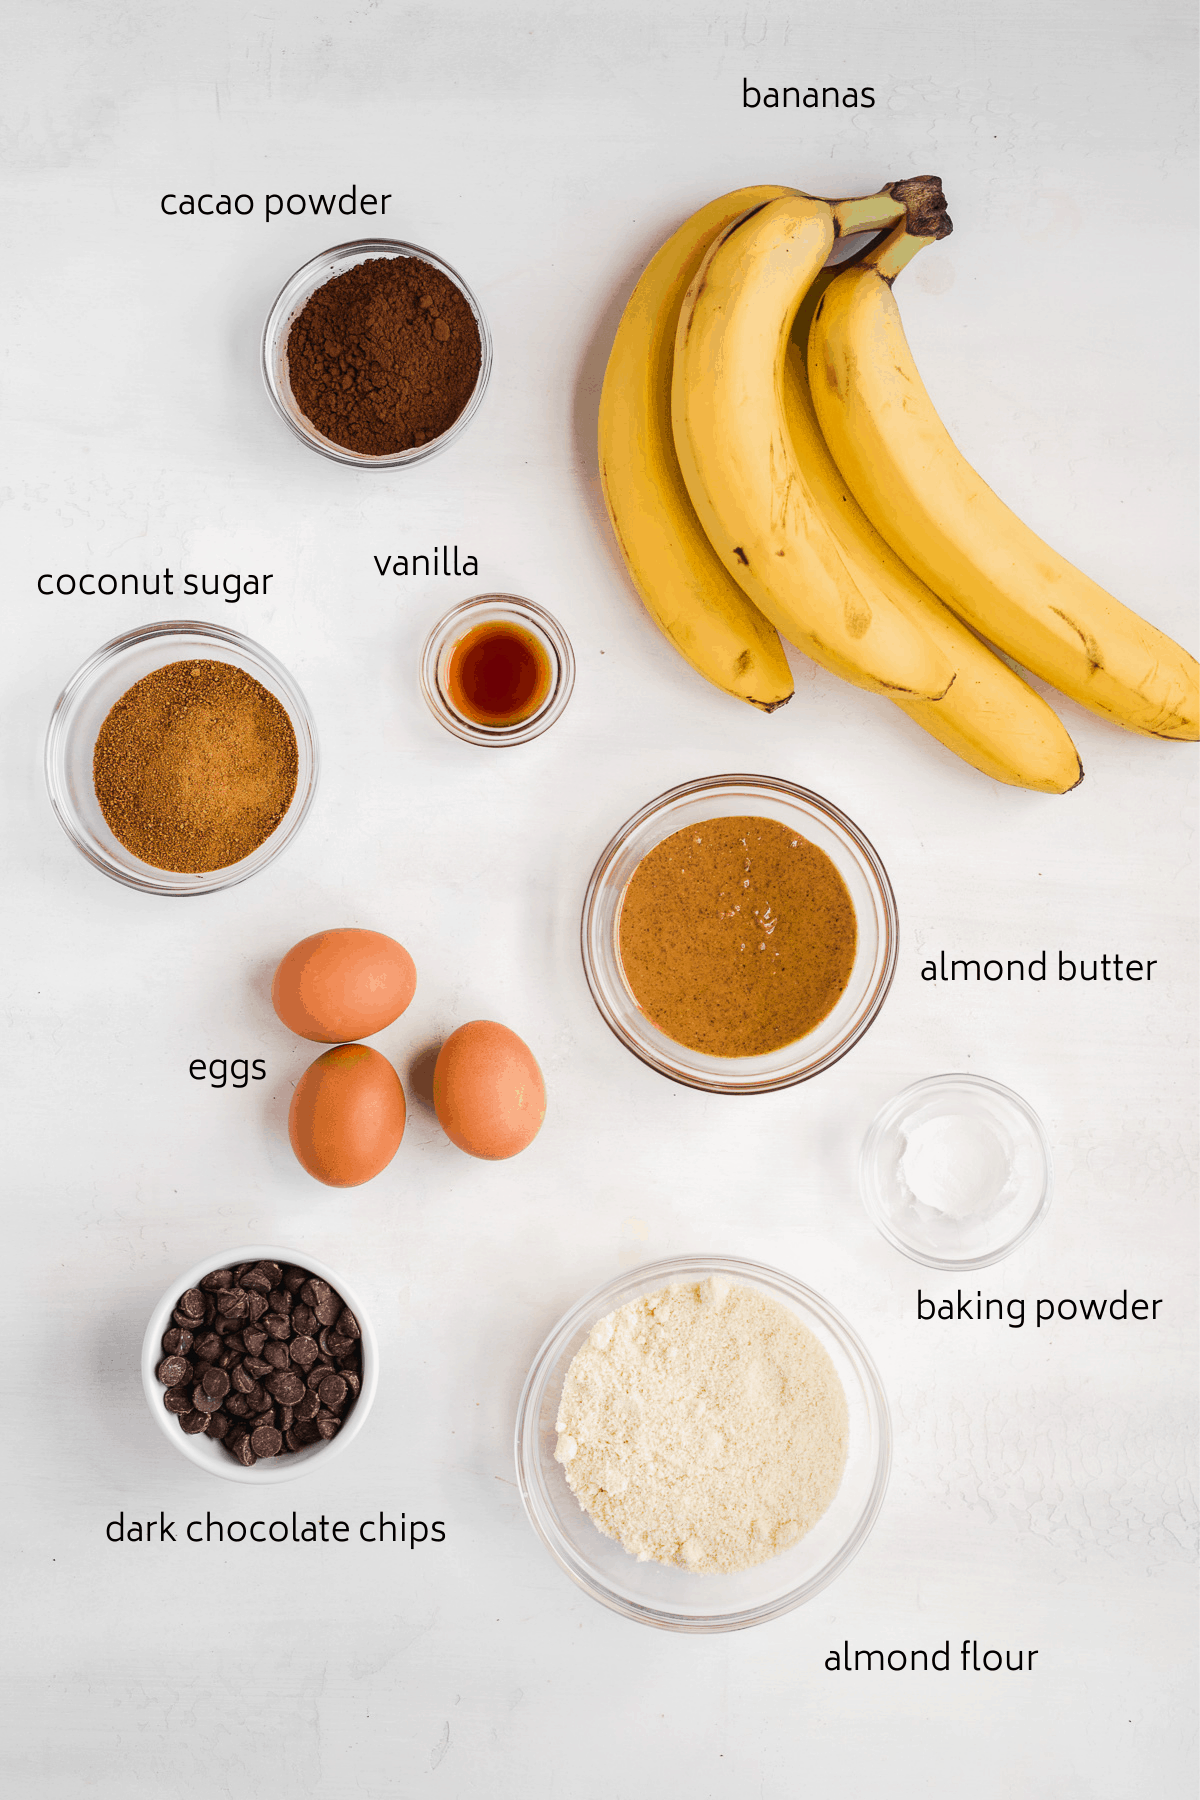 Image of healthy double chocolate banana bread ingredients on a white background labeled.